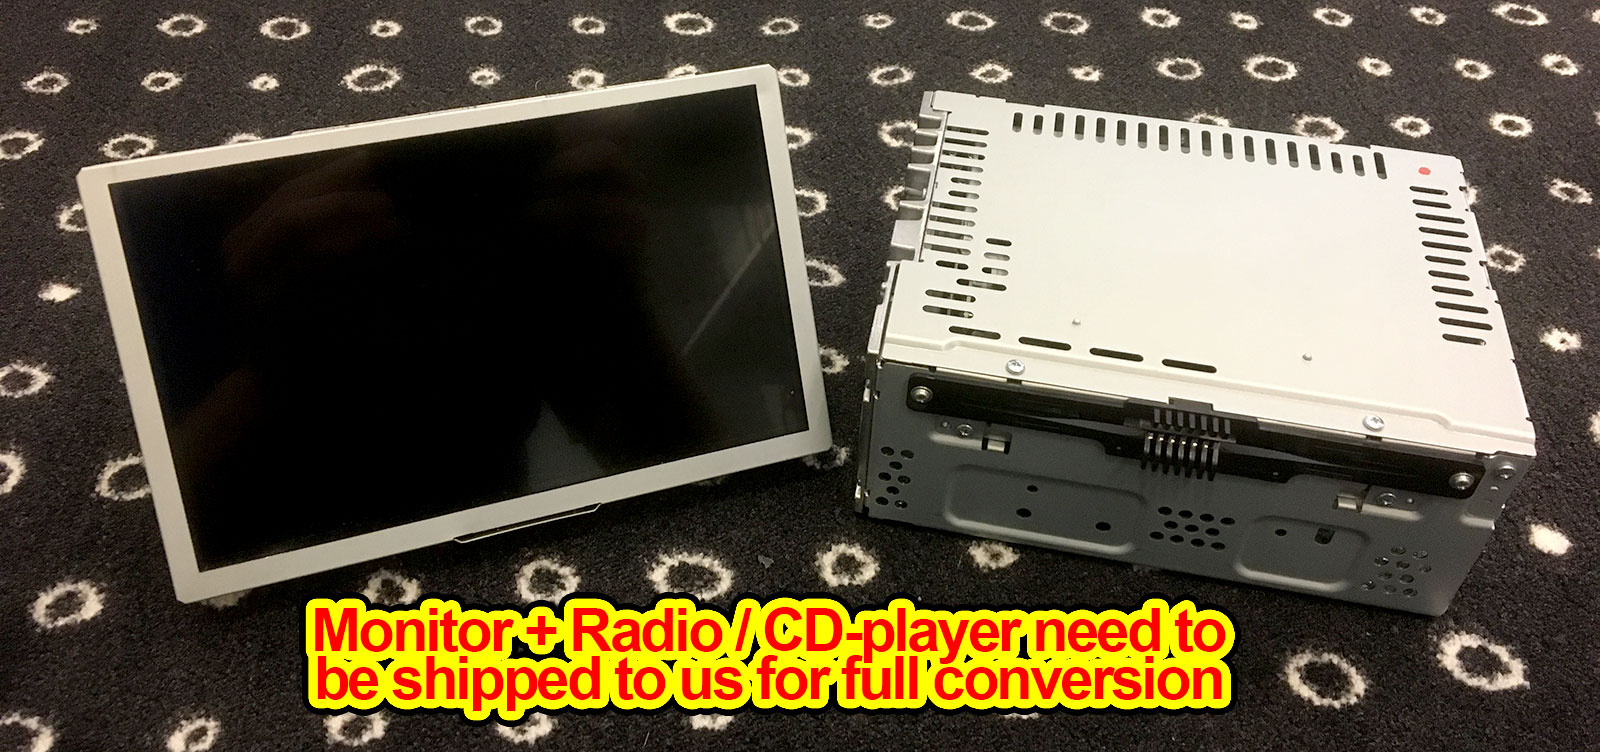 Ford European oem conversion SD card + Radio for Sync 2 / 2013-2015